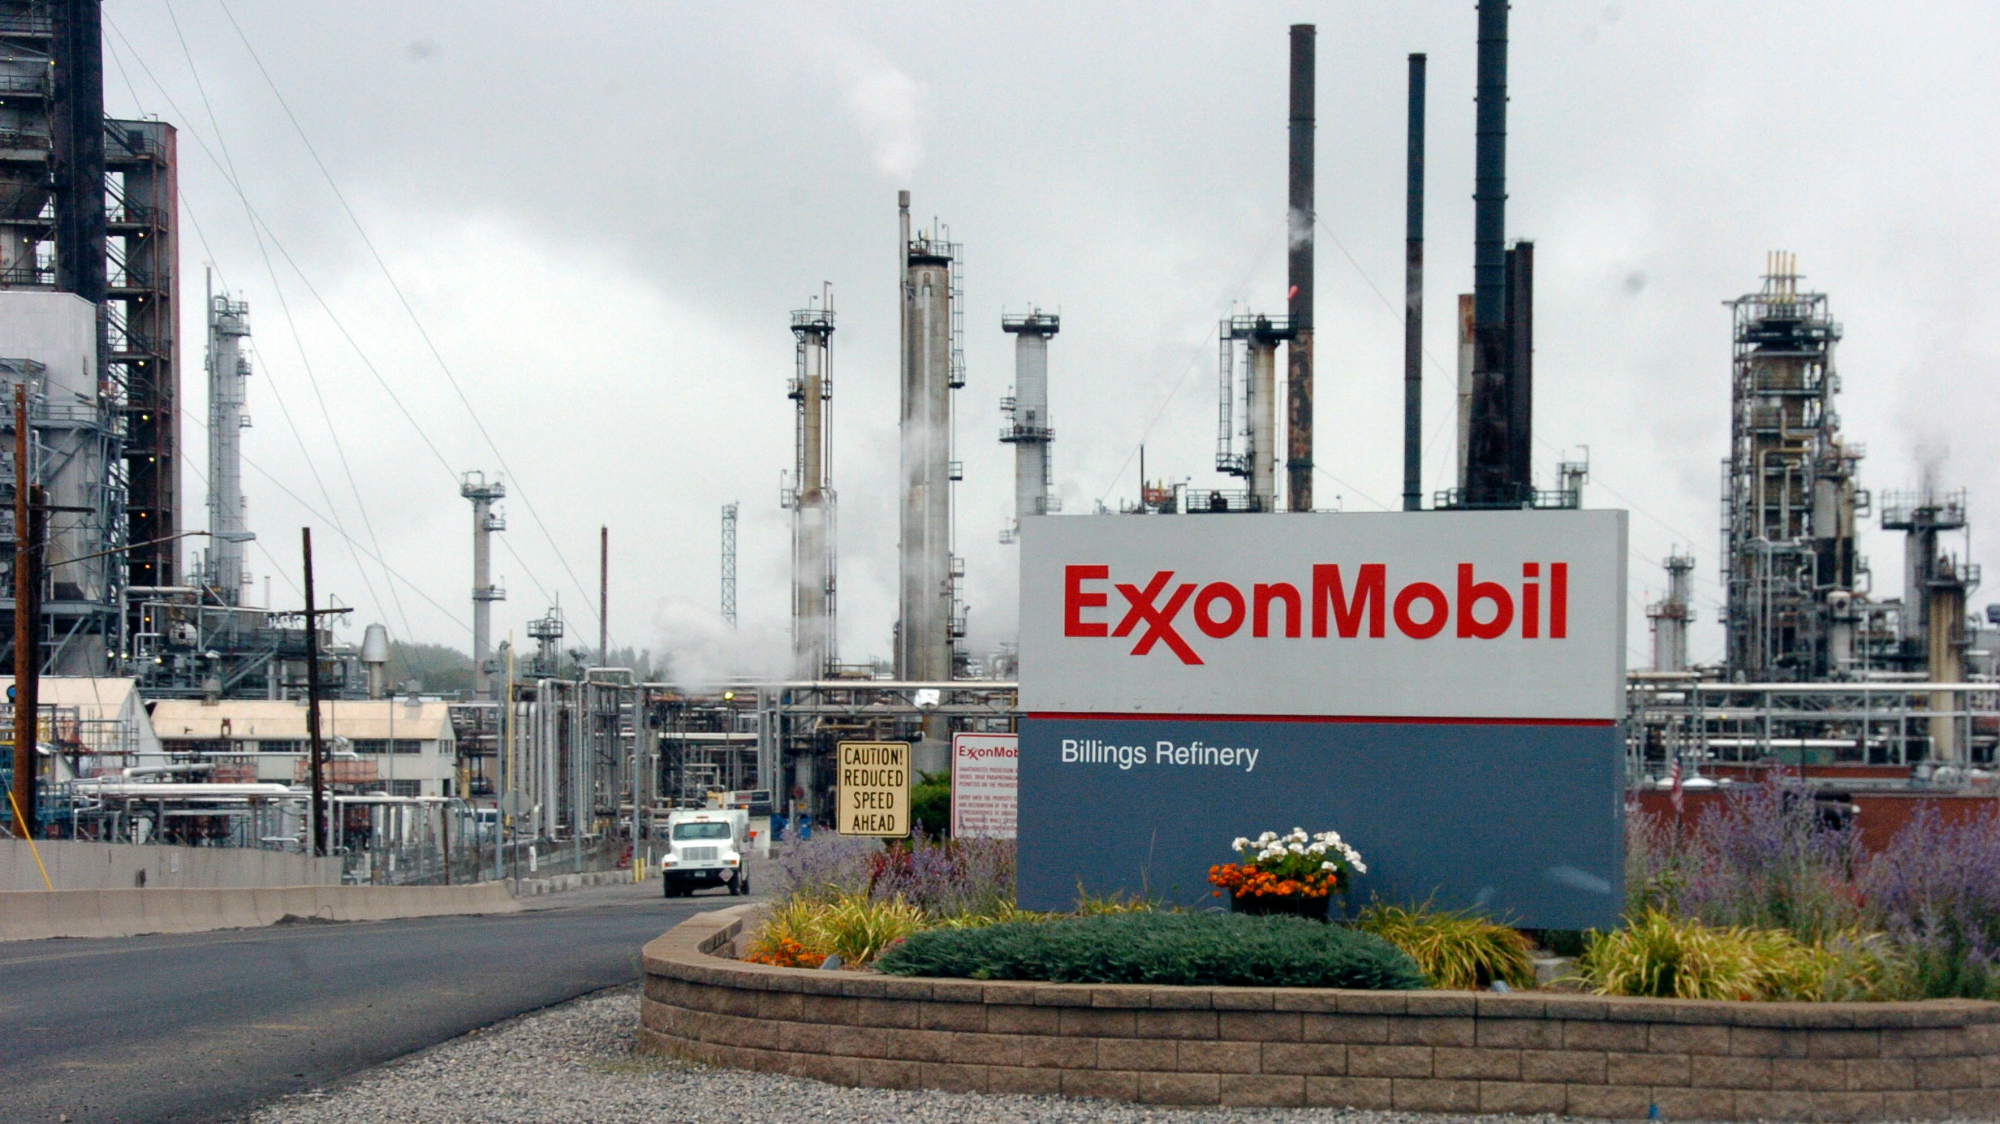 Exxon duped public over climate concerns